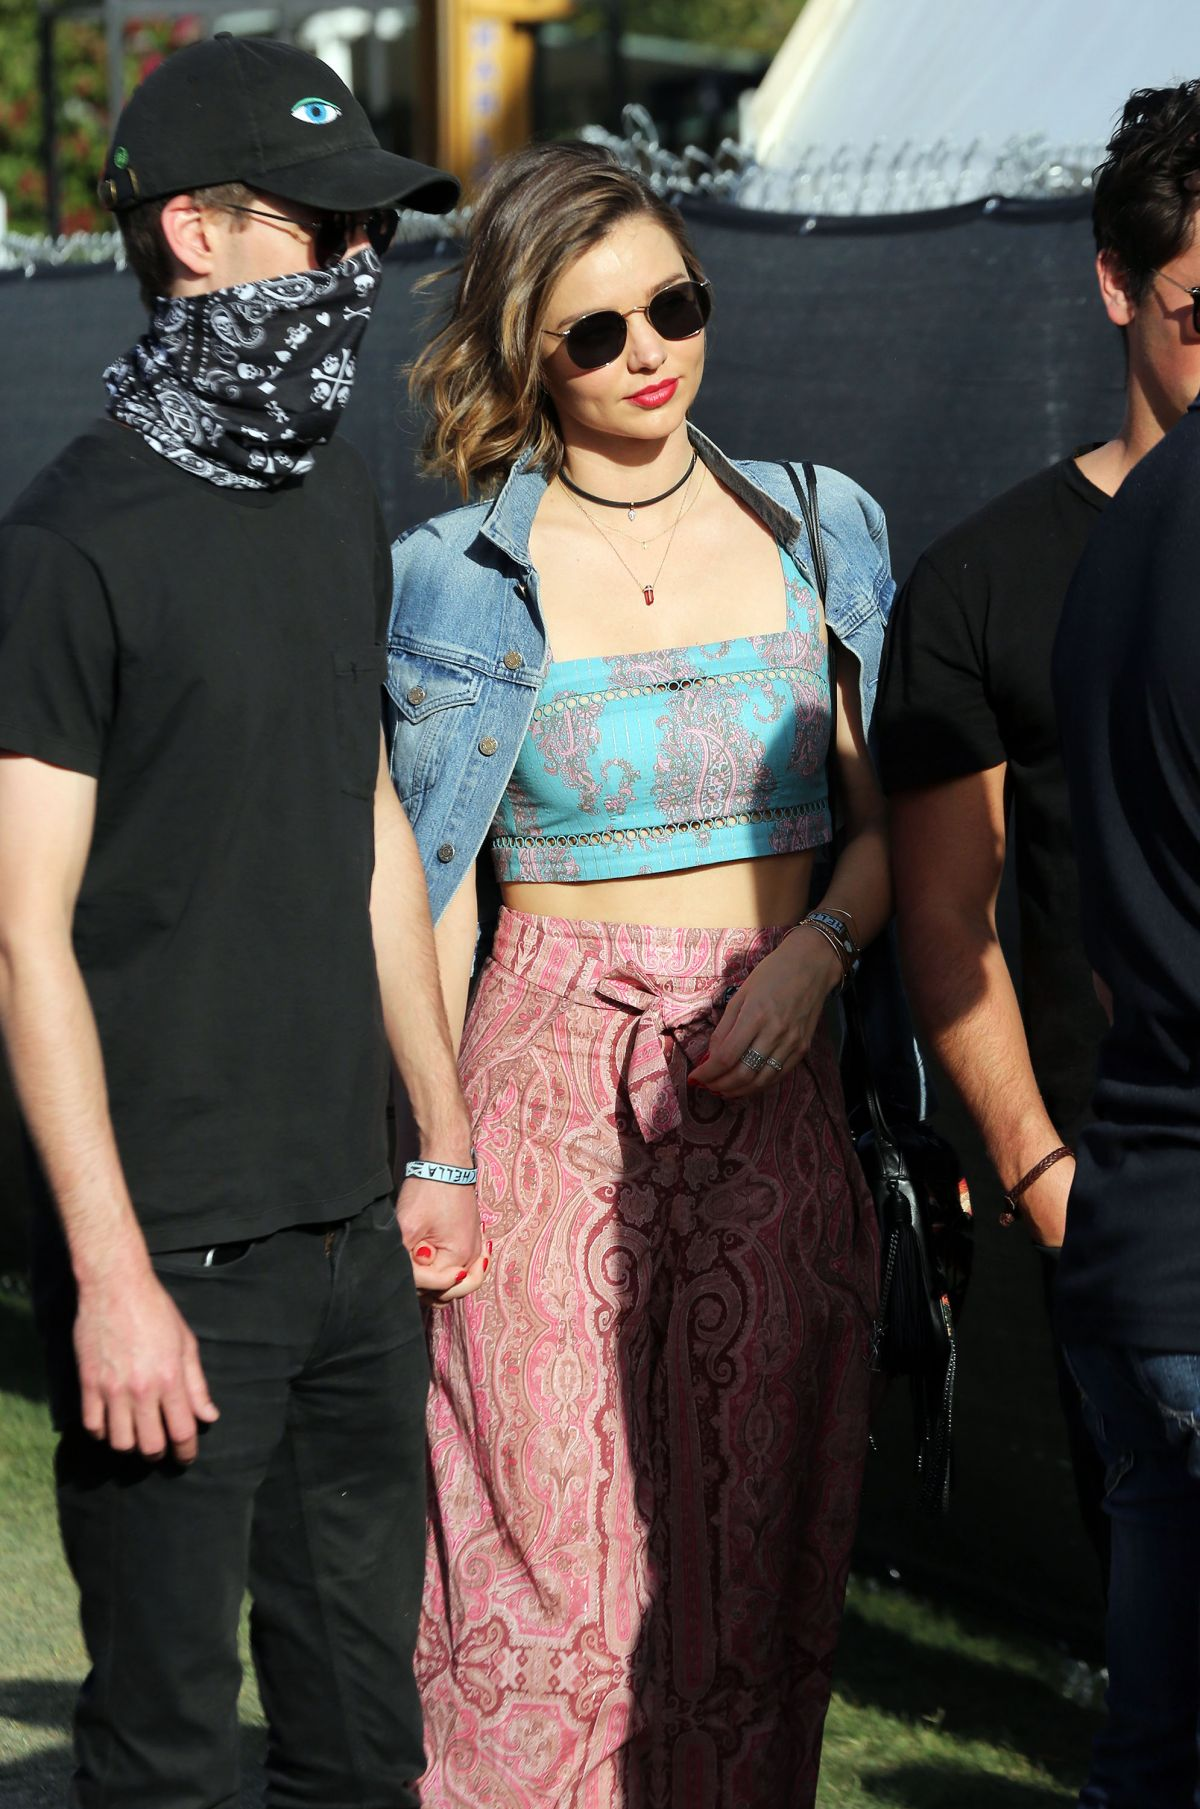 MIRANDA KERR at Coachella Valley Music and Arts Festival in Indio 04/15/2016